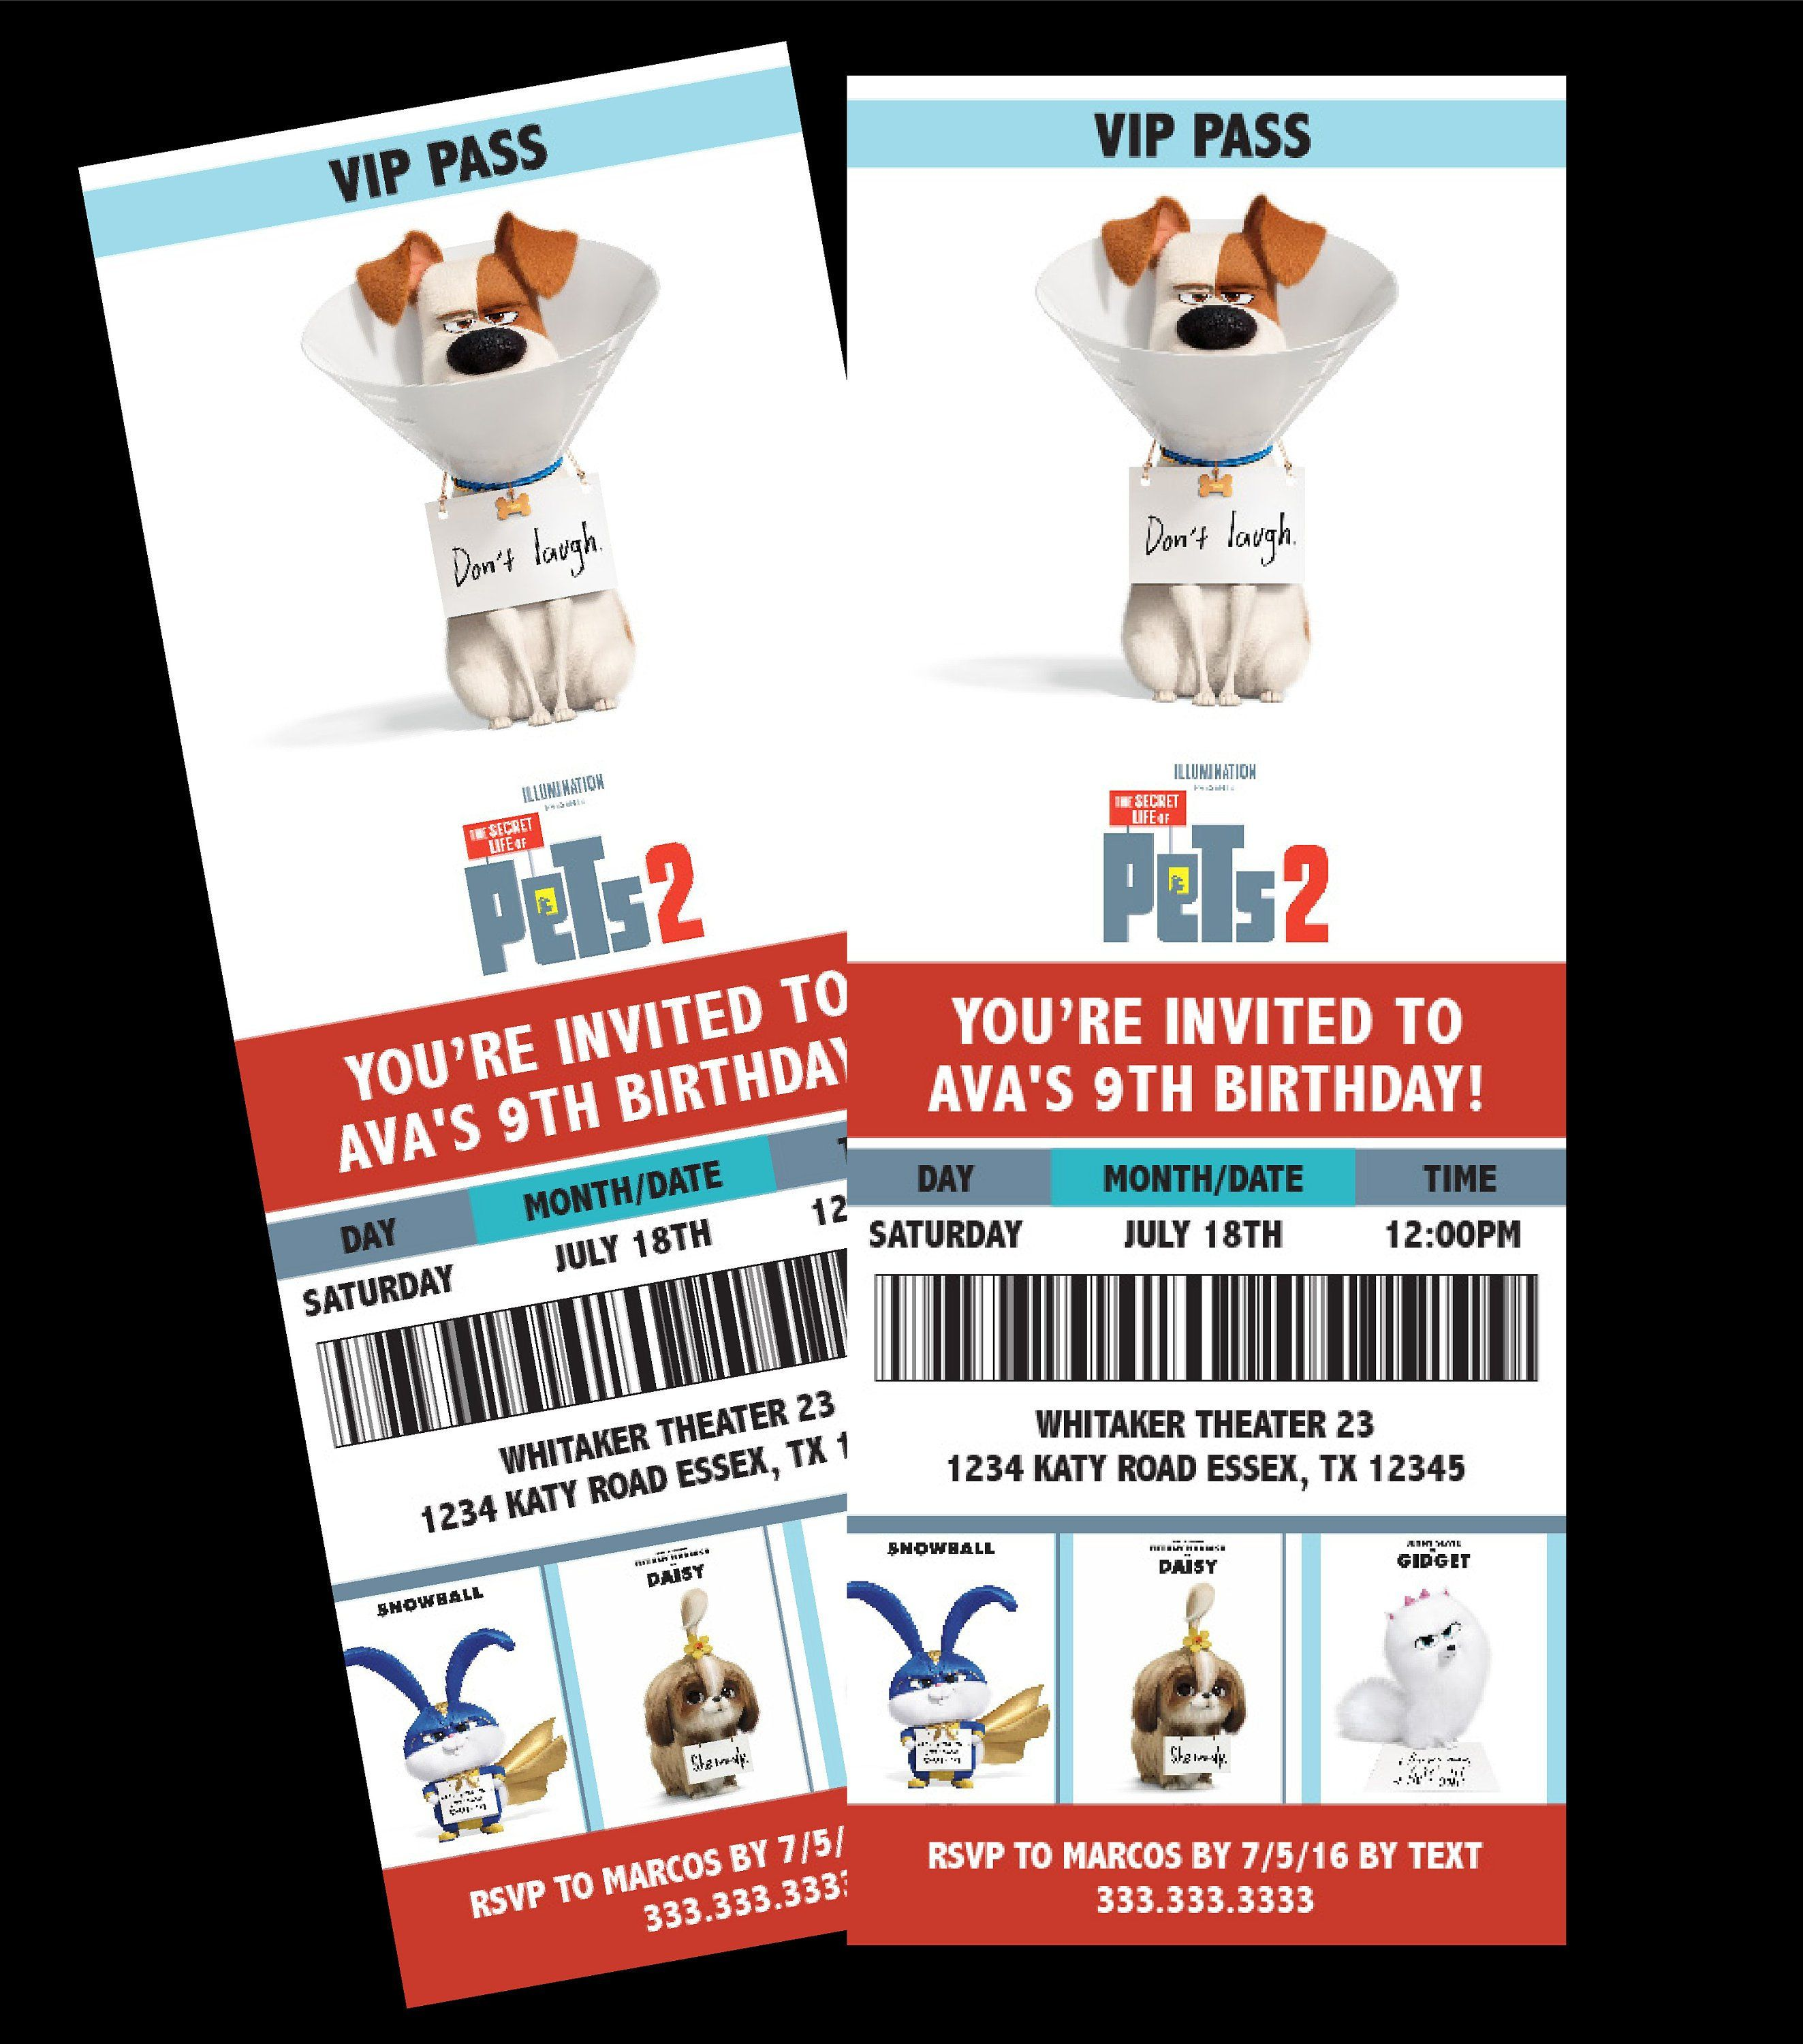 Secret Life Of Pets 2 Movie Ticket Themed Birthday Party Etsy Secret Life Of Pets Movie Invitation Birthday Party Themes